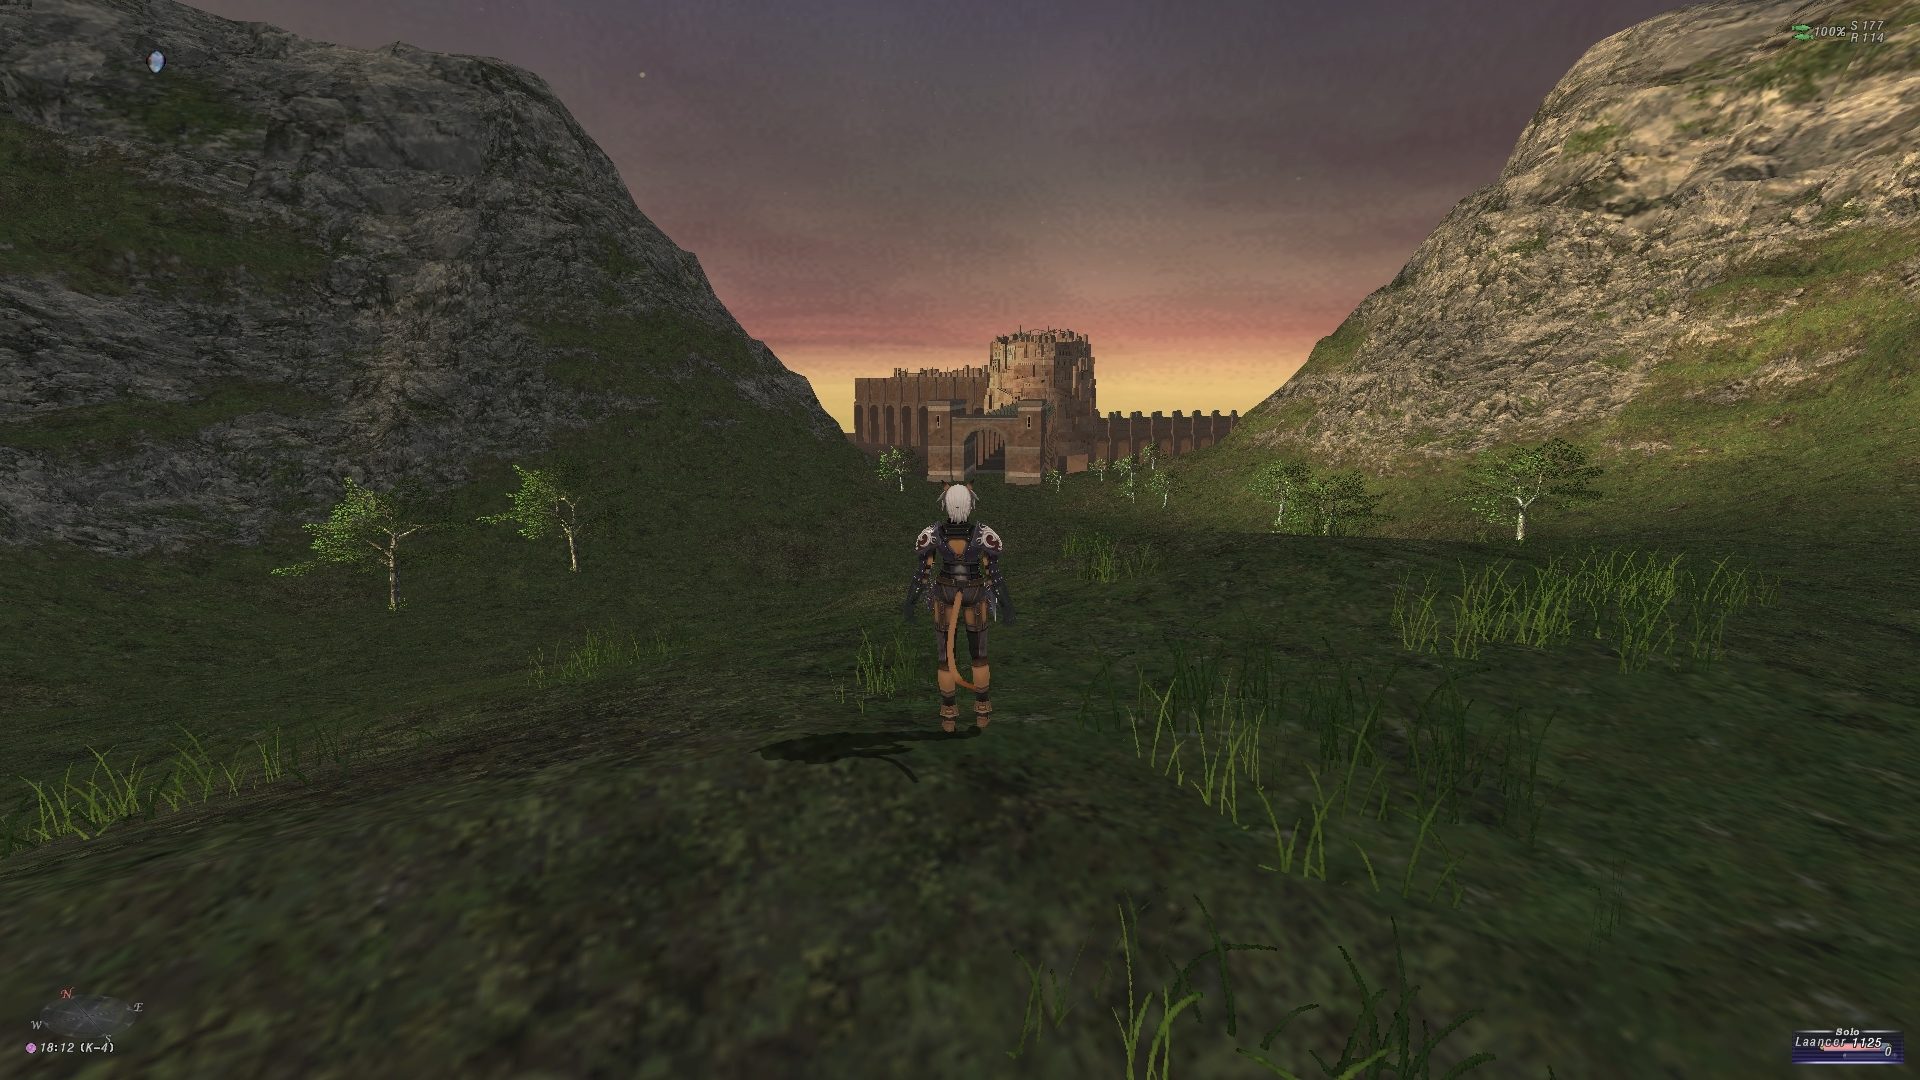 videogame avatar stands with back to camera in front of hills and castle in background.